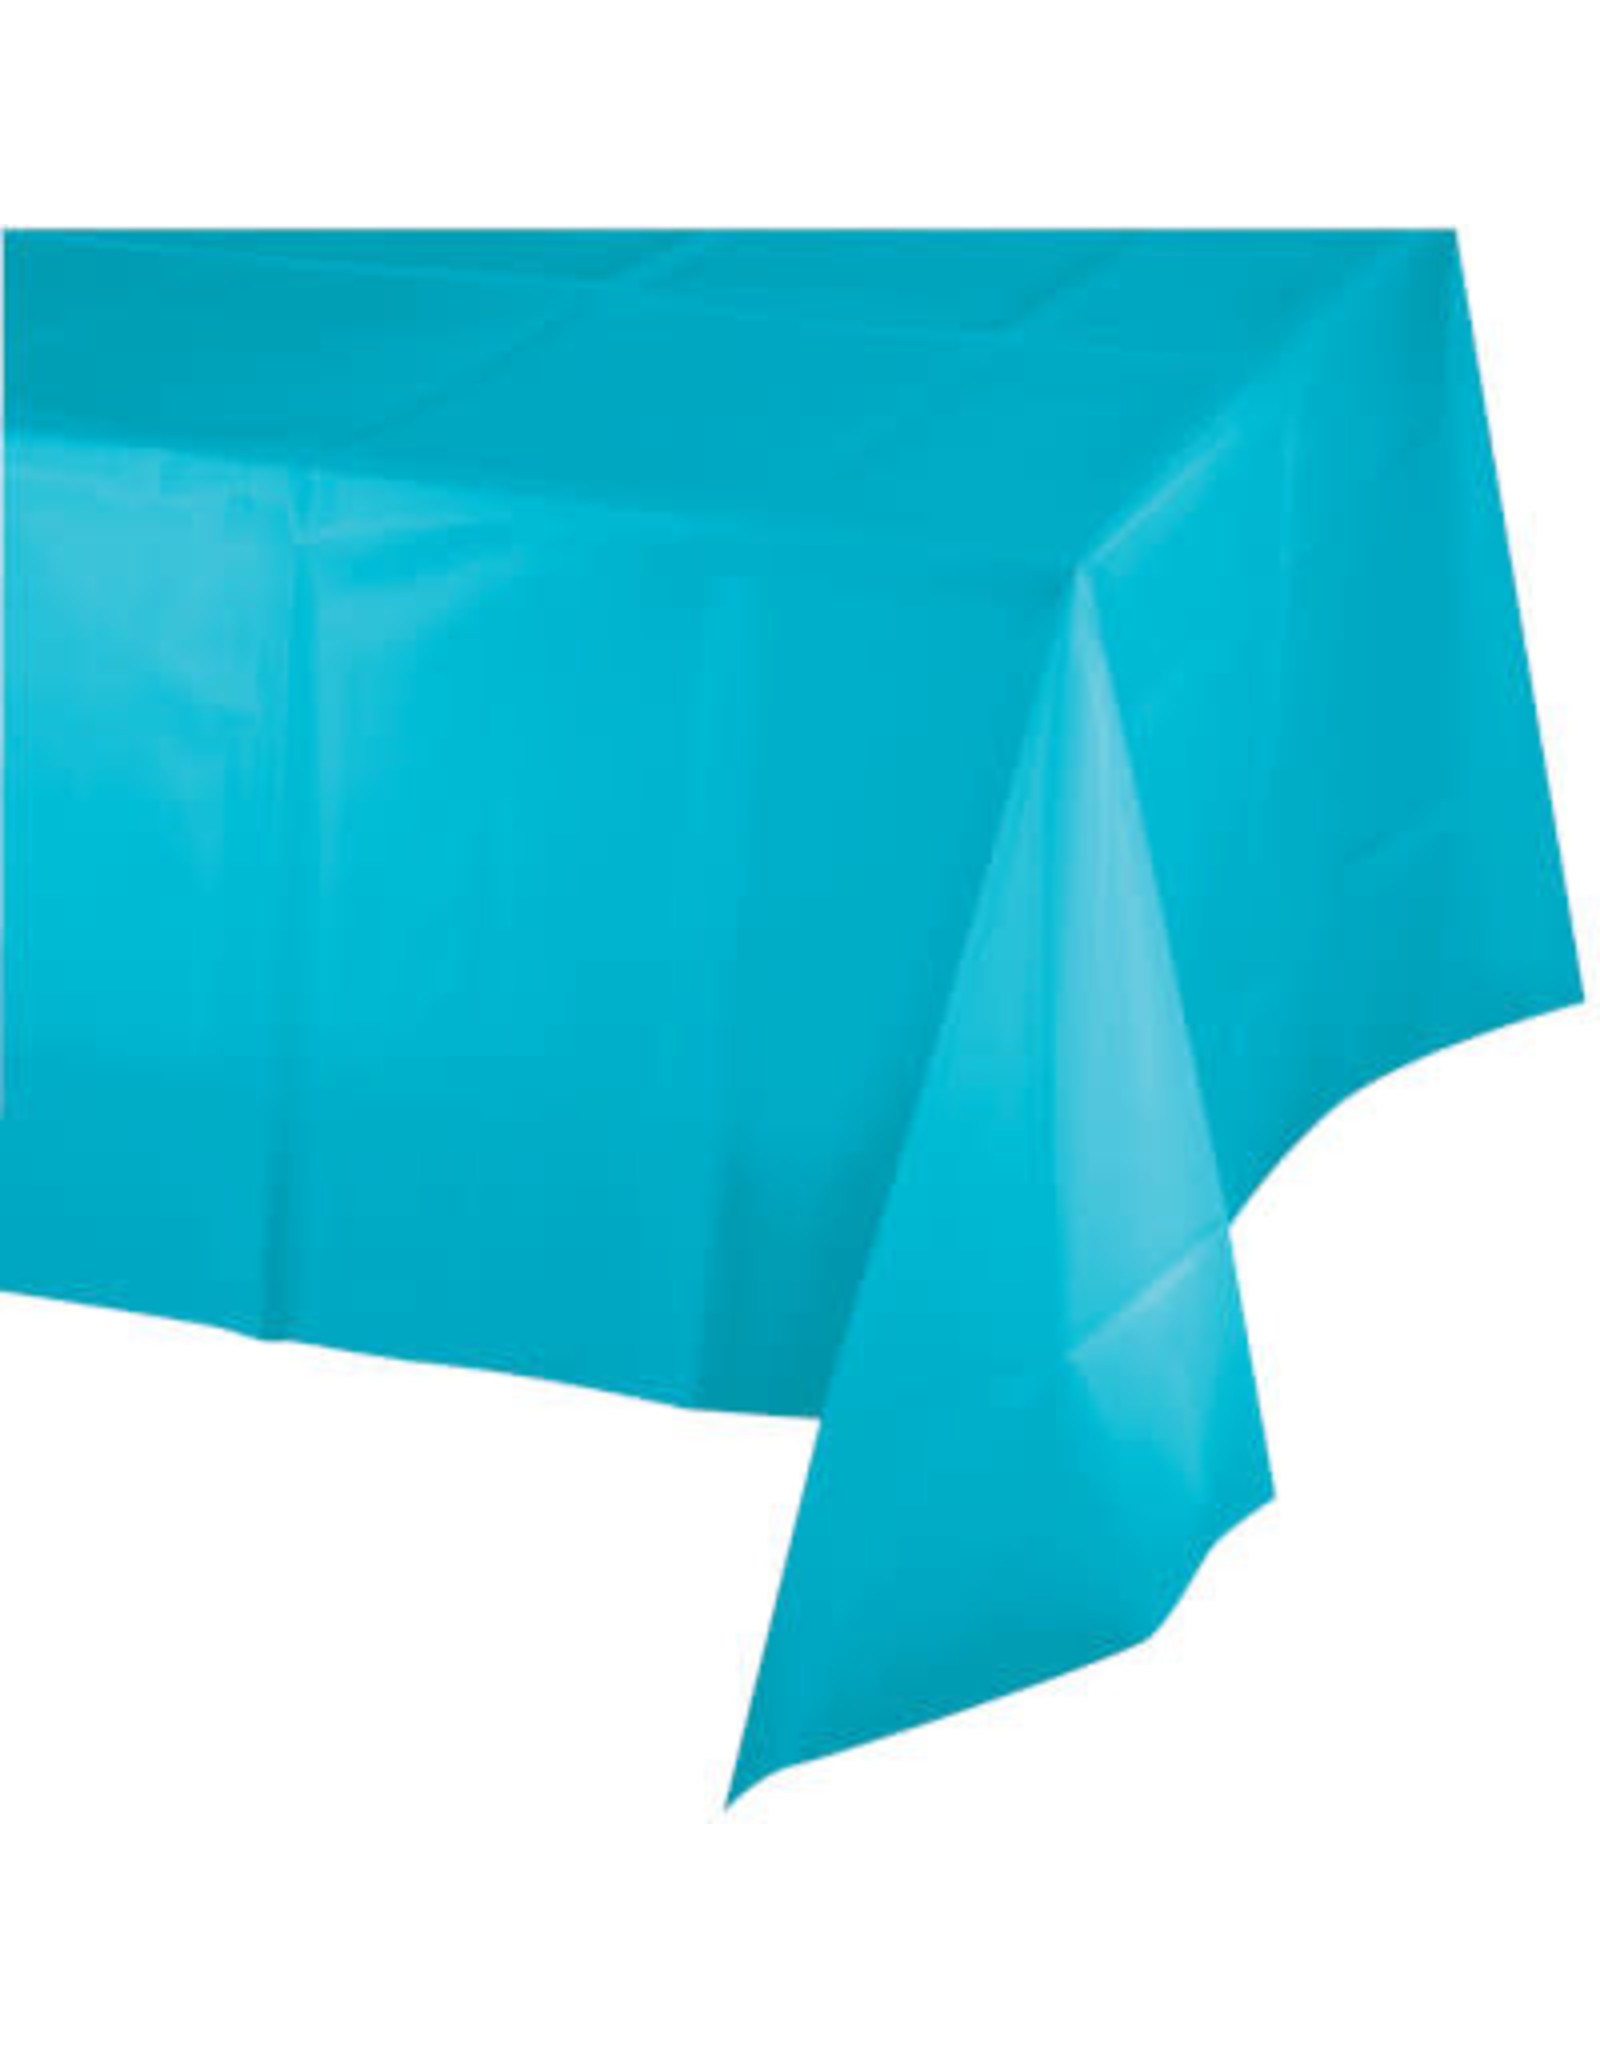 Touch of Color BERMUDA BLUE PLASTIC TABLECLOTH